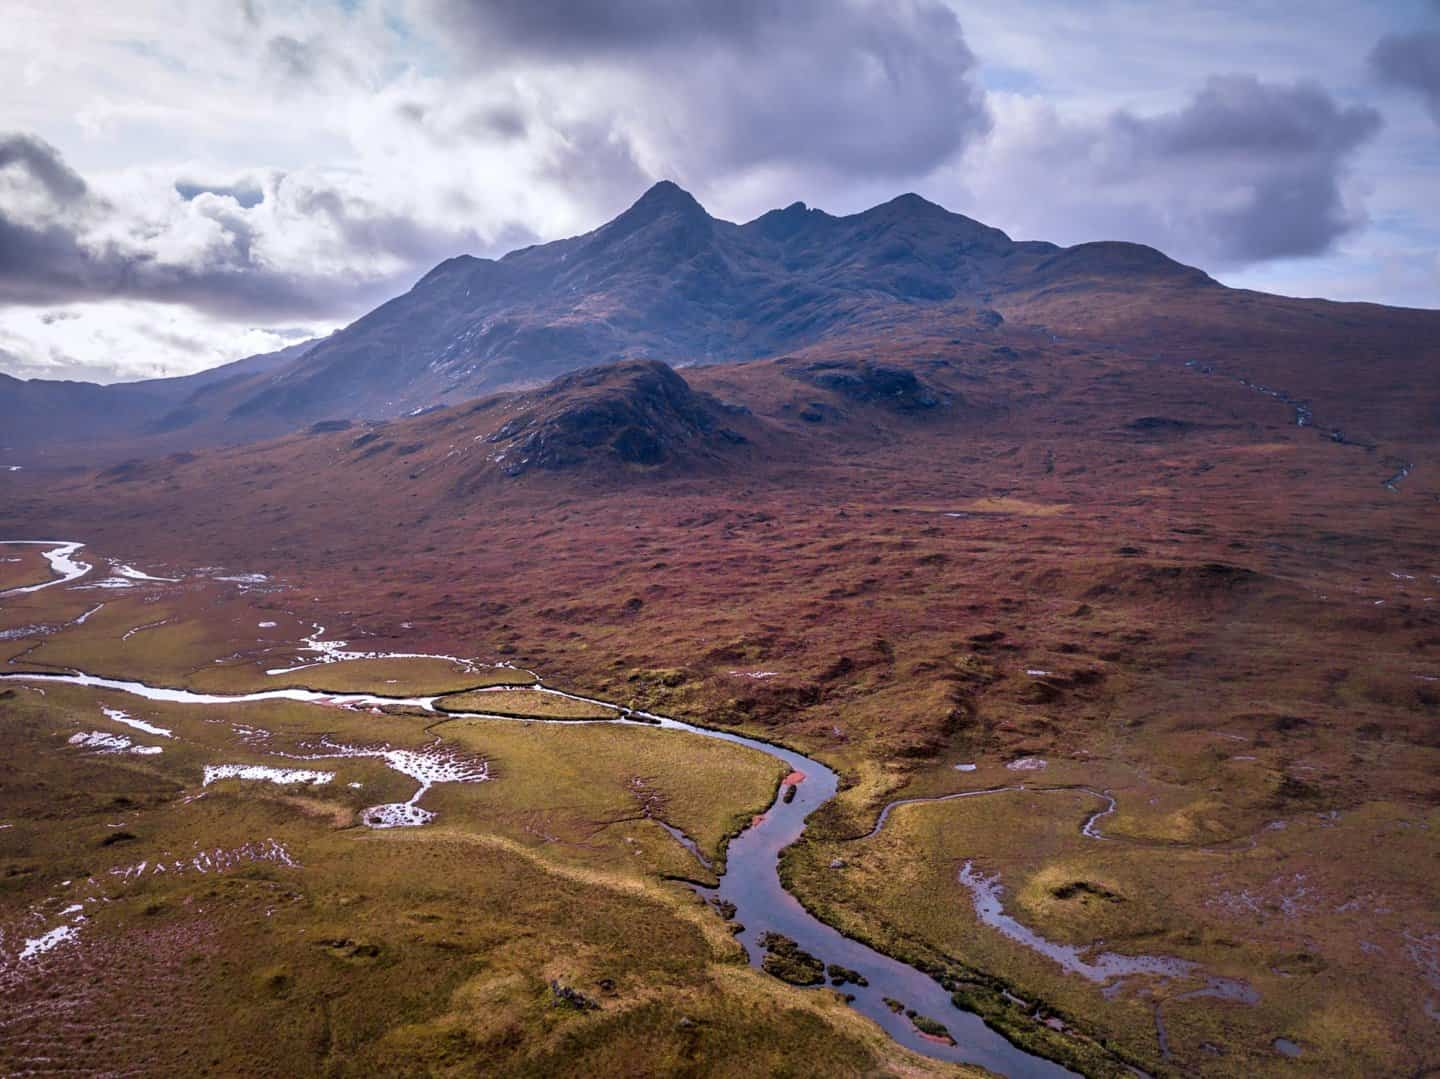 Soaring high about Sligachan on Day 1 of the Isle of Skye 2 day tour from Edinburgh.